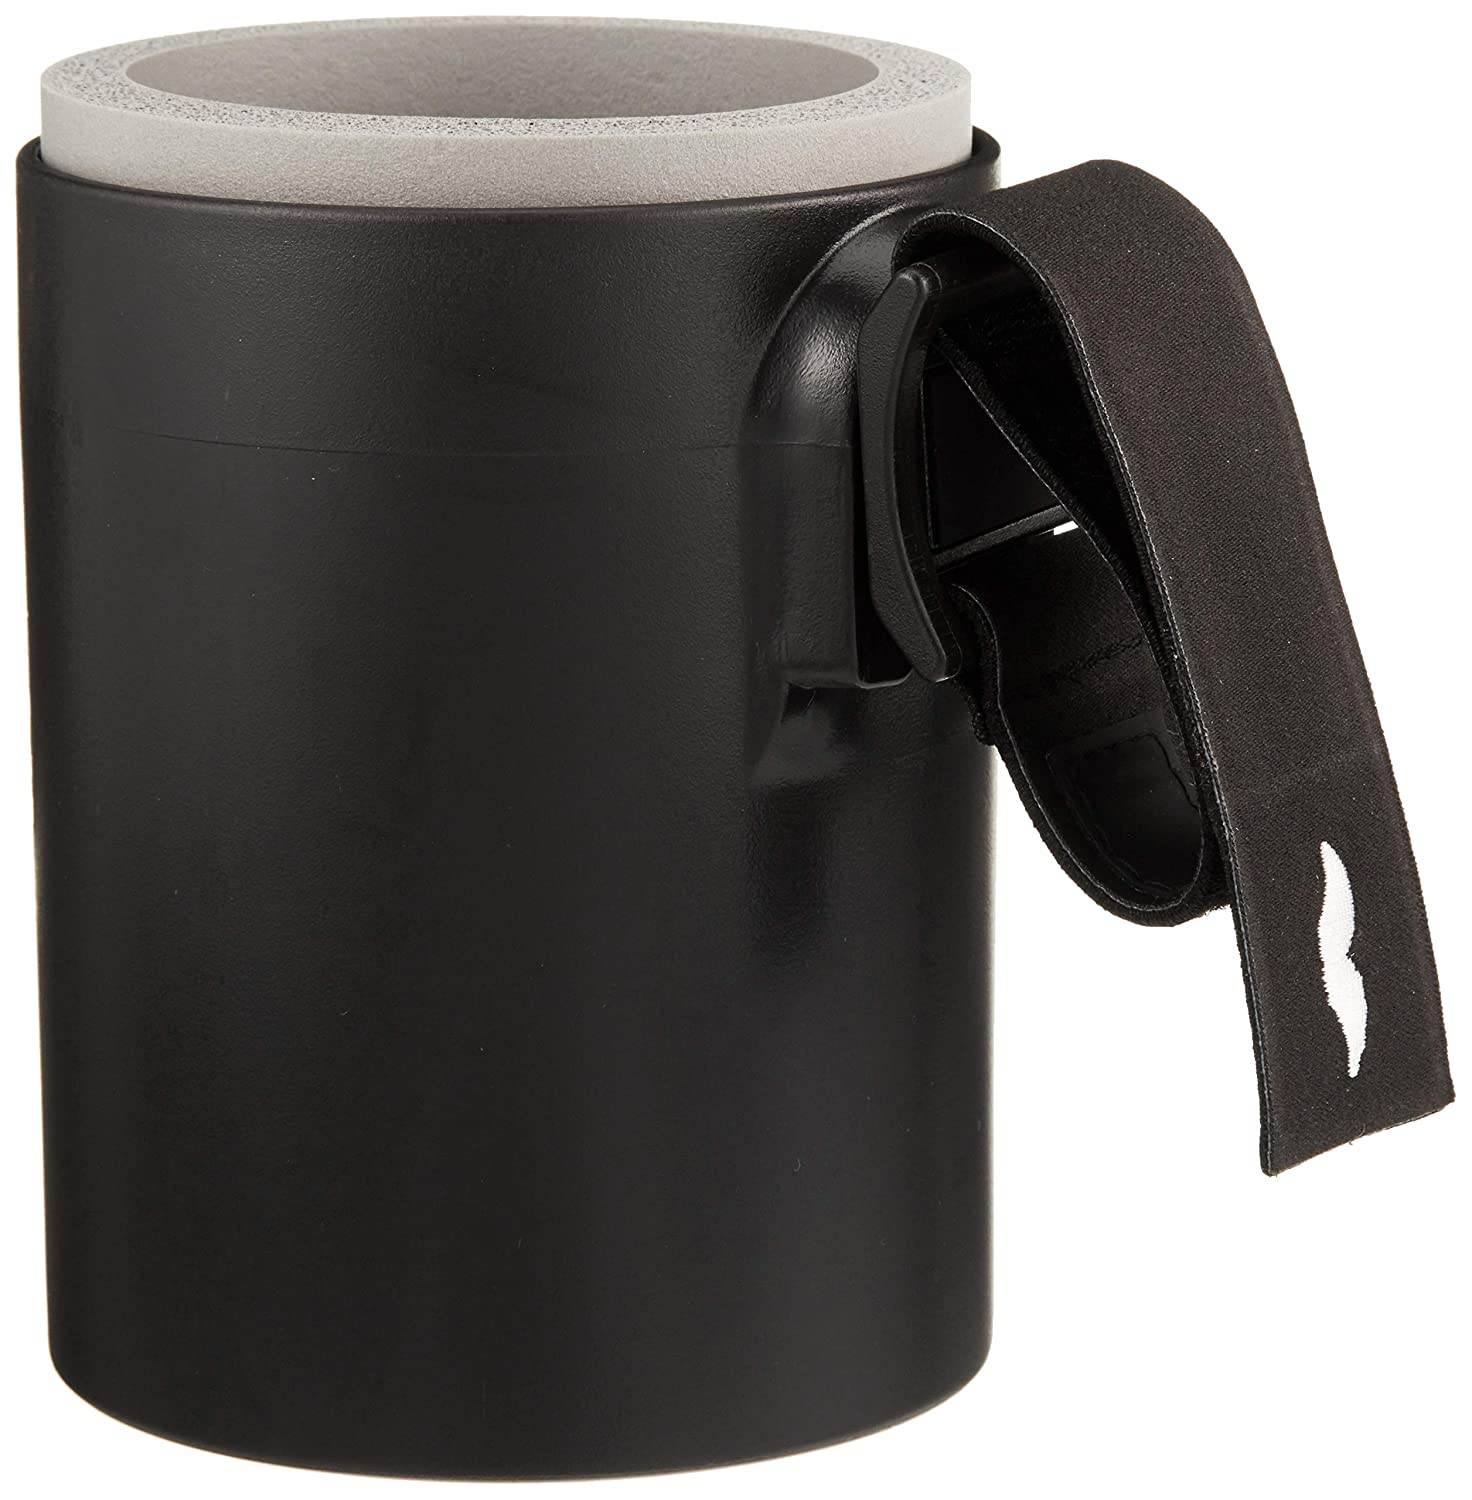 Dadding & Co. Original DaddieCaddie Cup Holder, Koozie Combo For Strollers, Golf Carts, Boats and Bikes – includes Mounting System – Discretely Holds 12 Oz. Beverage Cans for Happy Hour on the Go